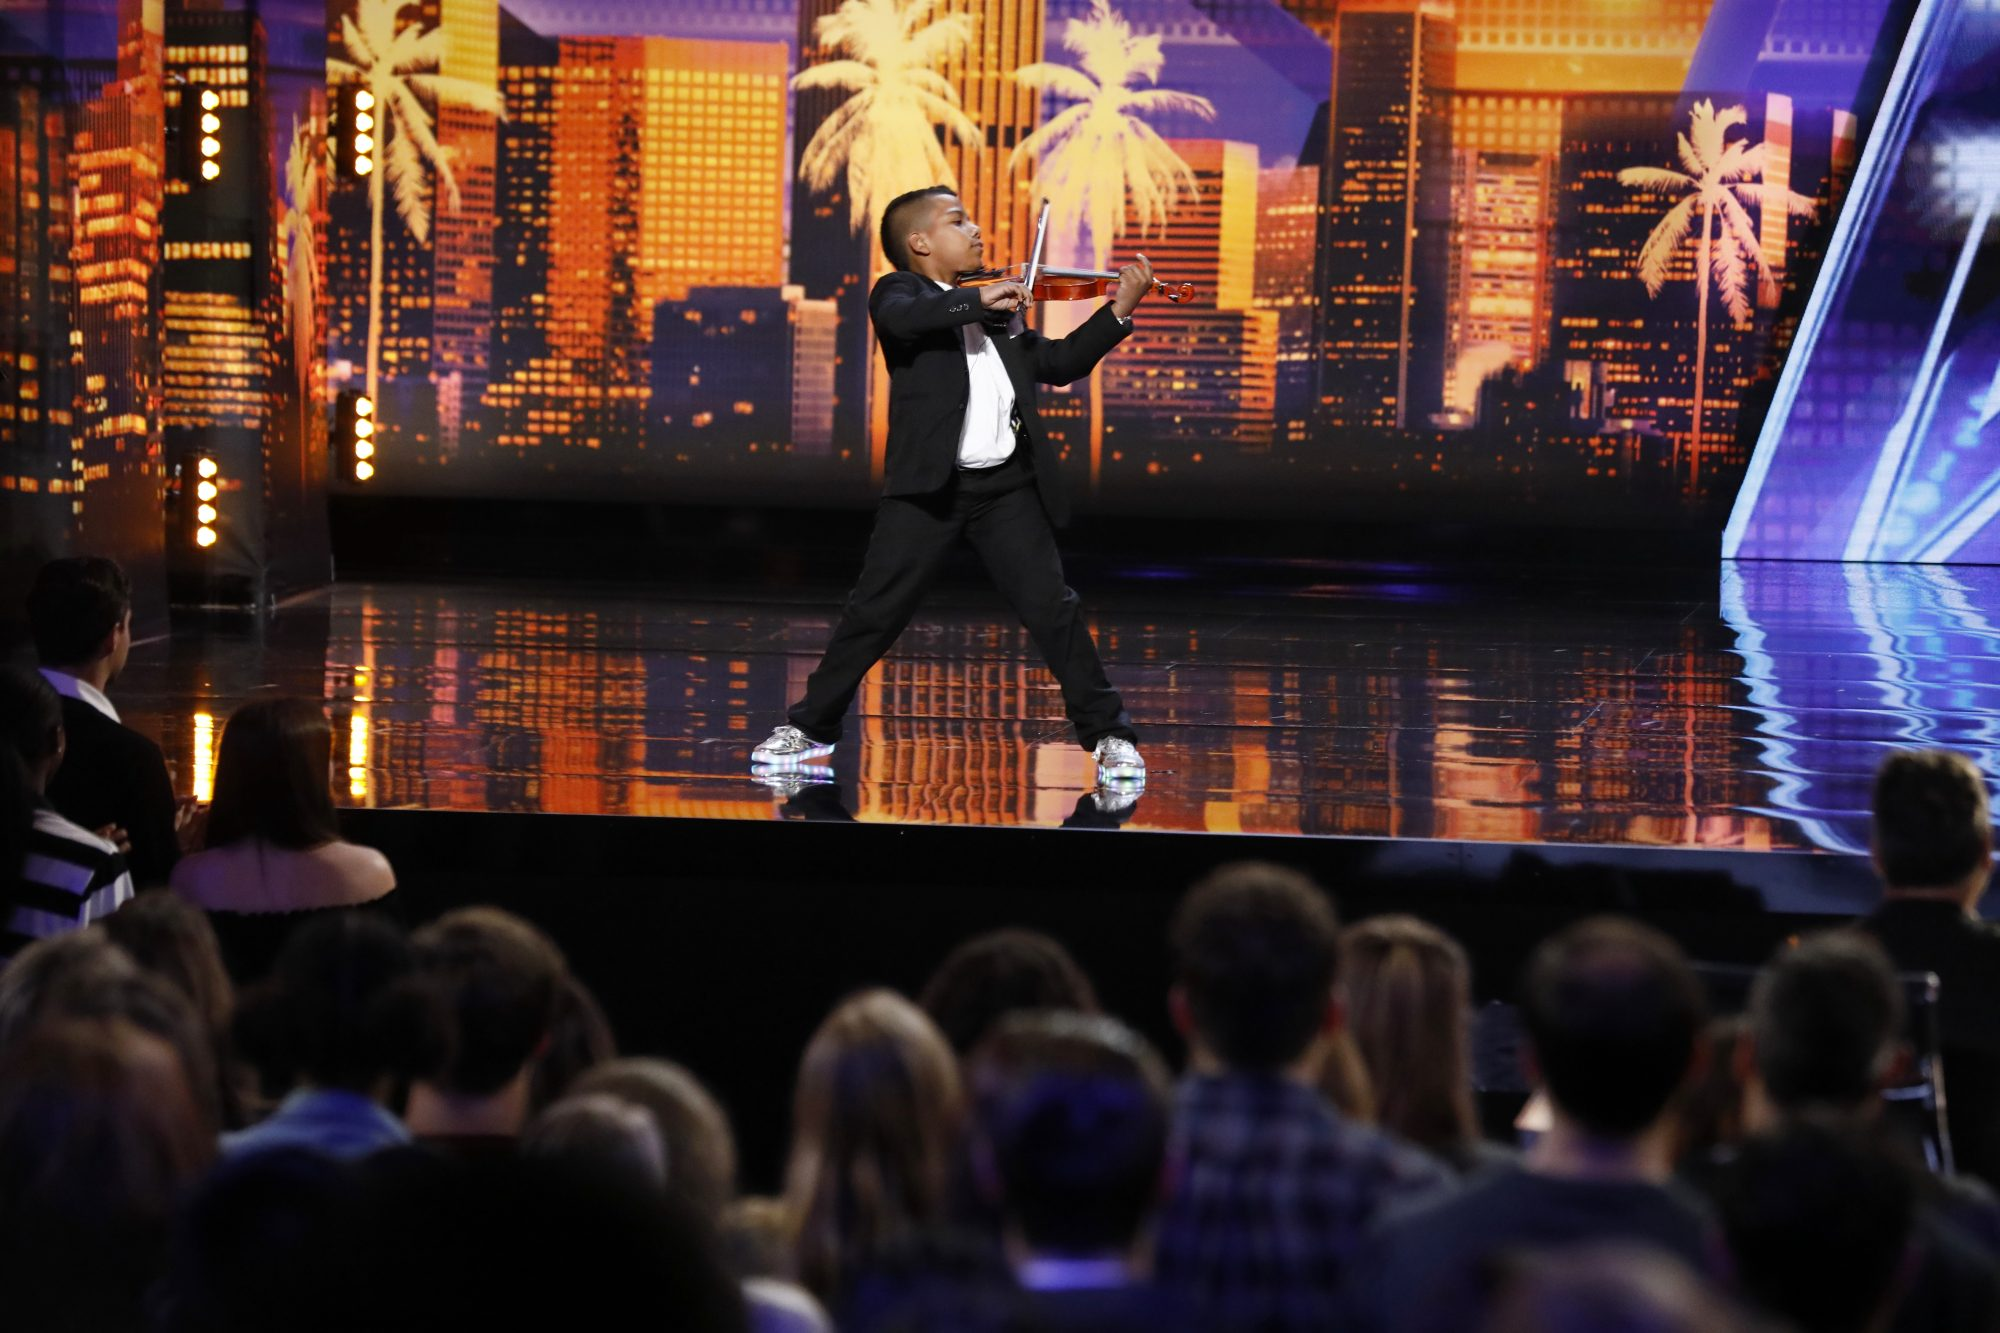 Watch This 11-Year-Old North Carolina Boy's Golden Moment from America's Got Talent